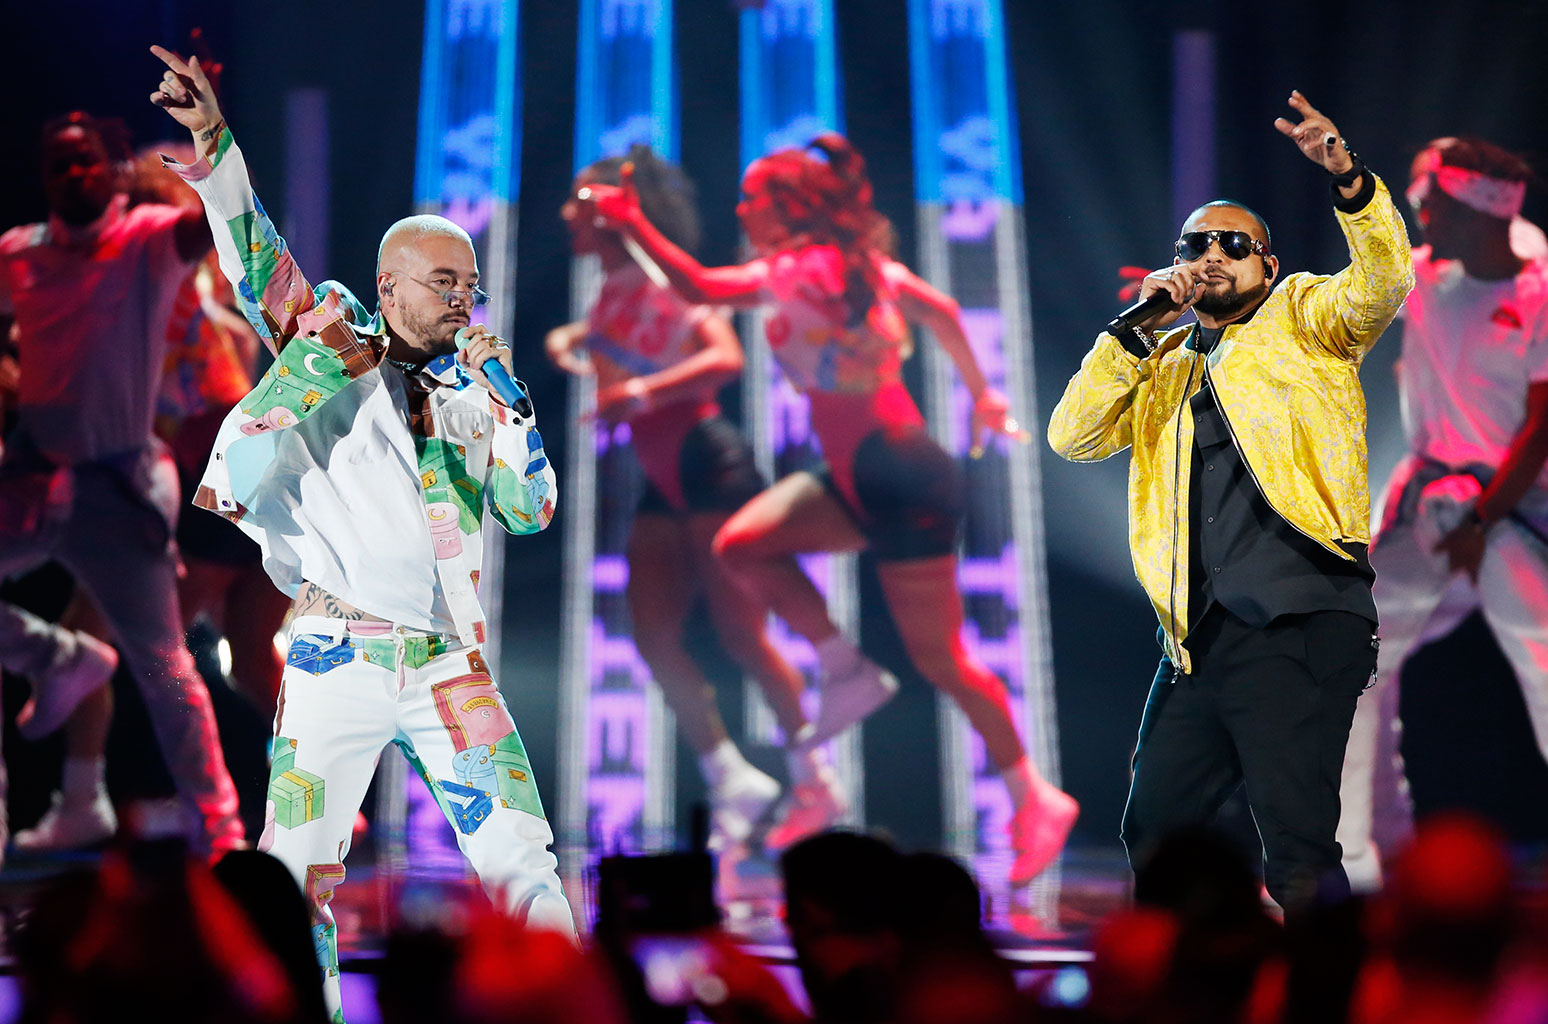 j-balvin-lool_eyewear_vega_sean-paul-billboard-latin-music-awards-show-2019-billboard-1548.jpg